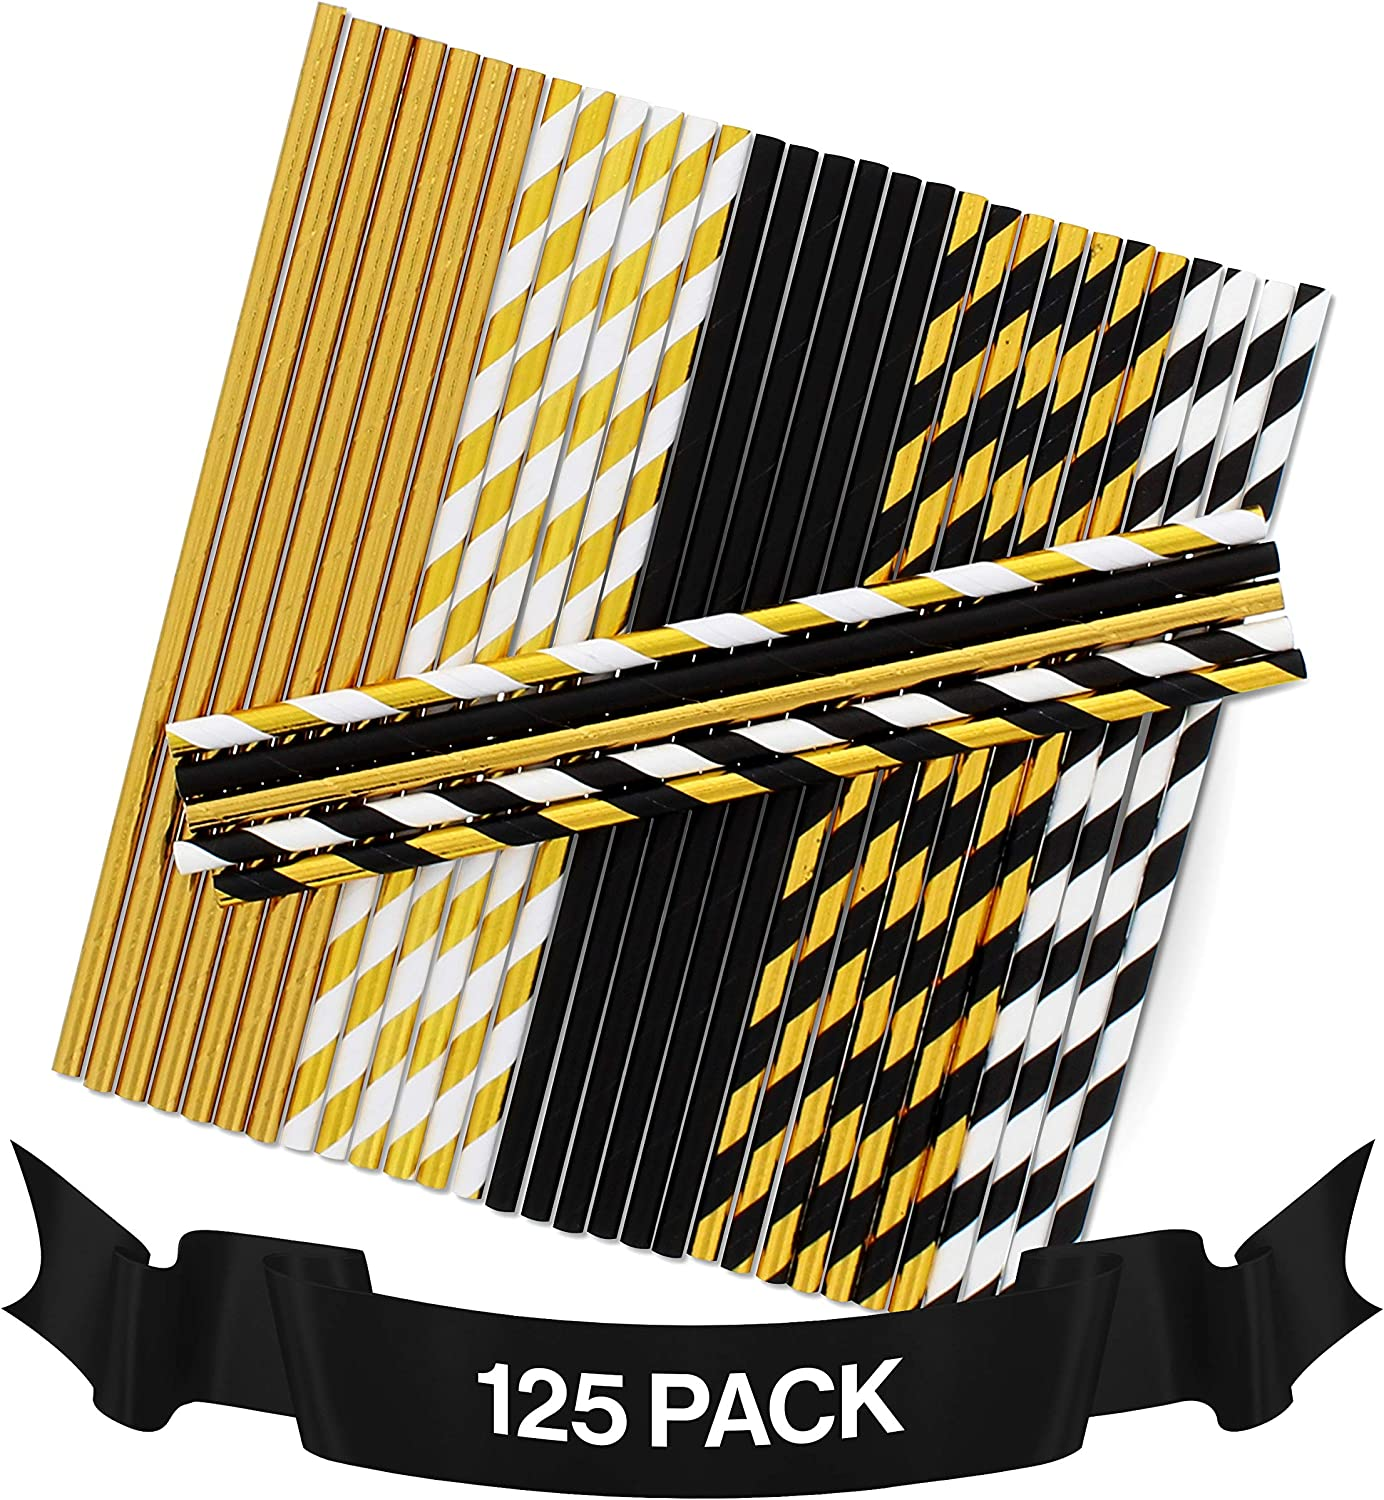 Party On Tap Black and Gold Straws - Great for Gold Party Decorations, Graduation, Bachelorette, Wedding, New Years Eve Parties - 125 Biodegradable Disposable Paper Straw Pack